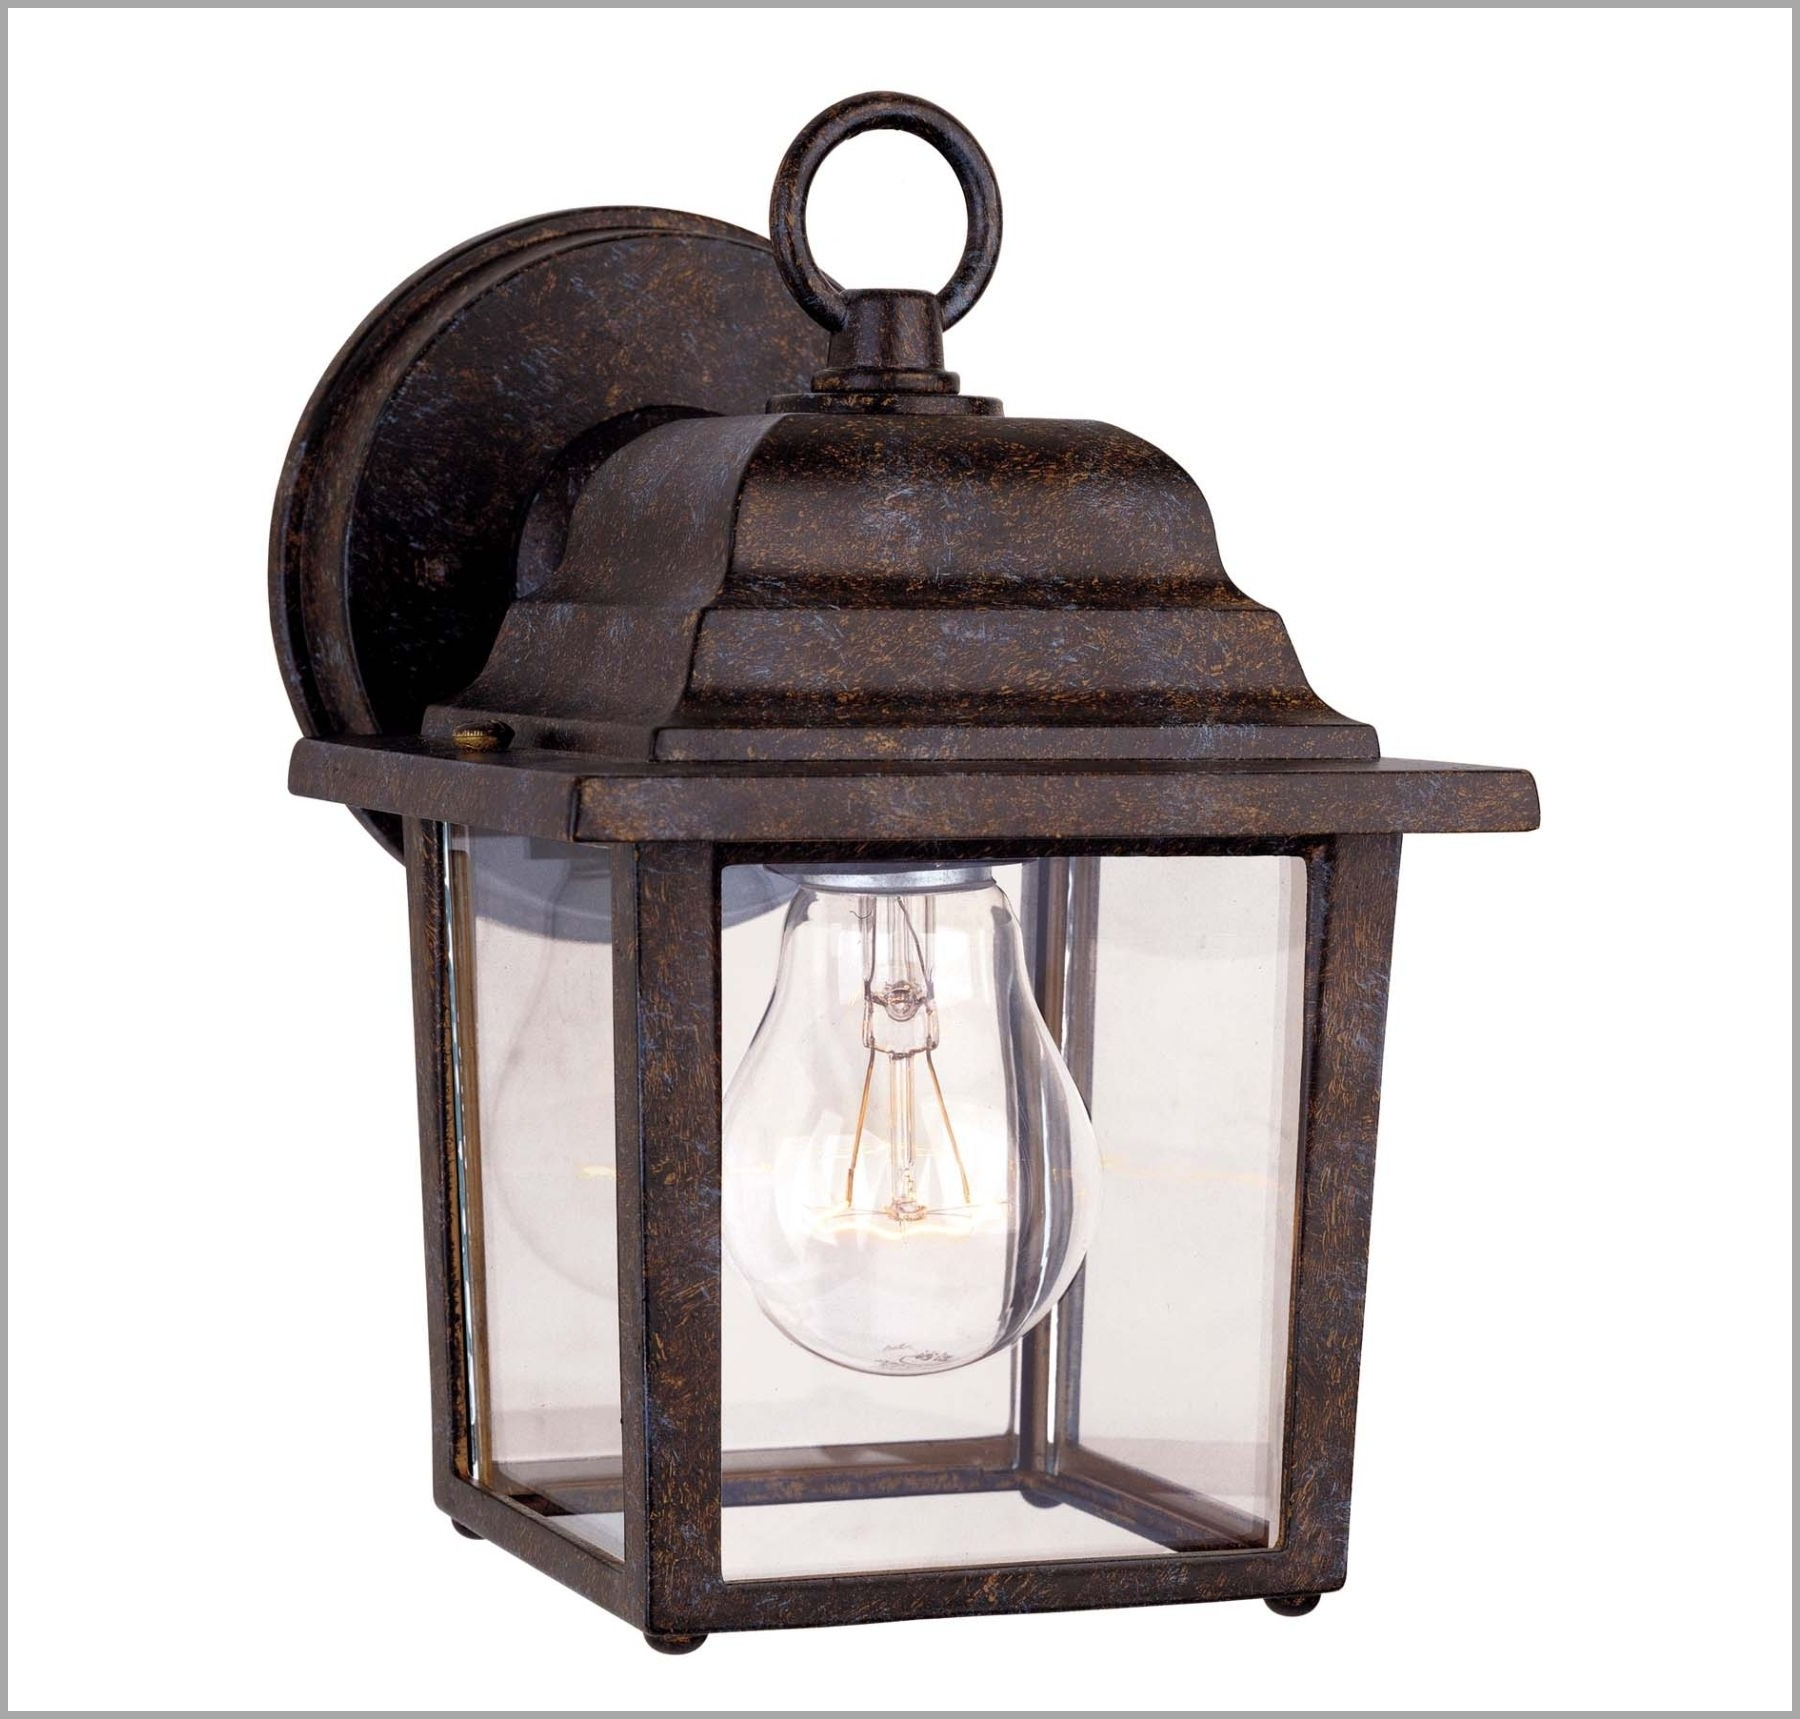 Latest classy home depot porch light fixtures ideas 597855 furniture ideas pertaining to garden porch